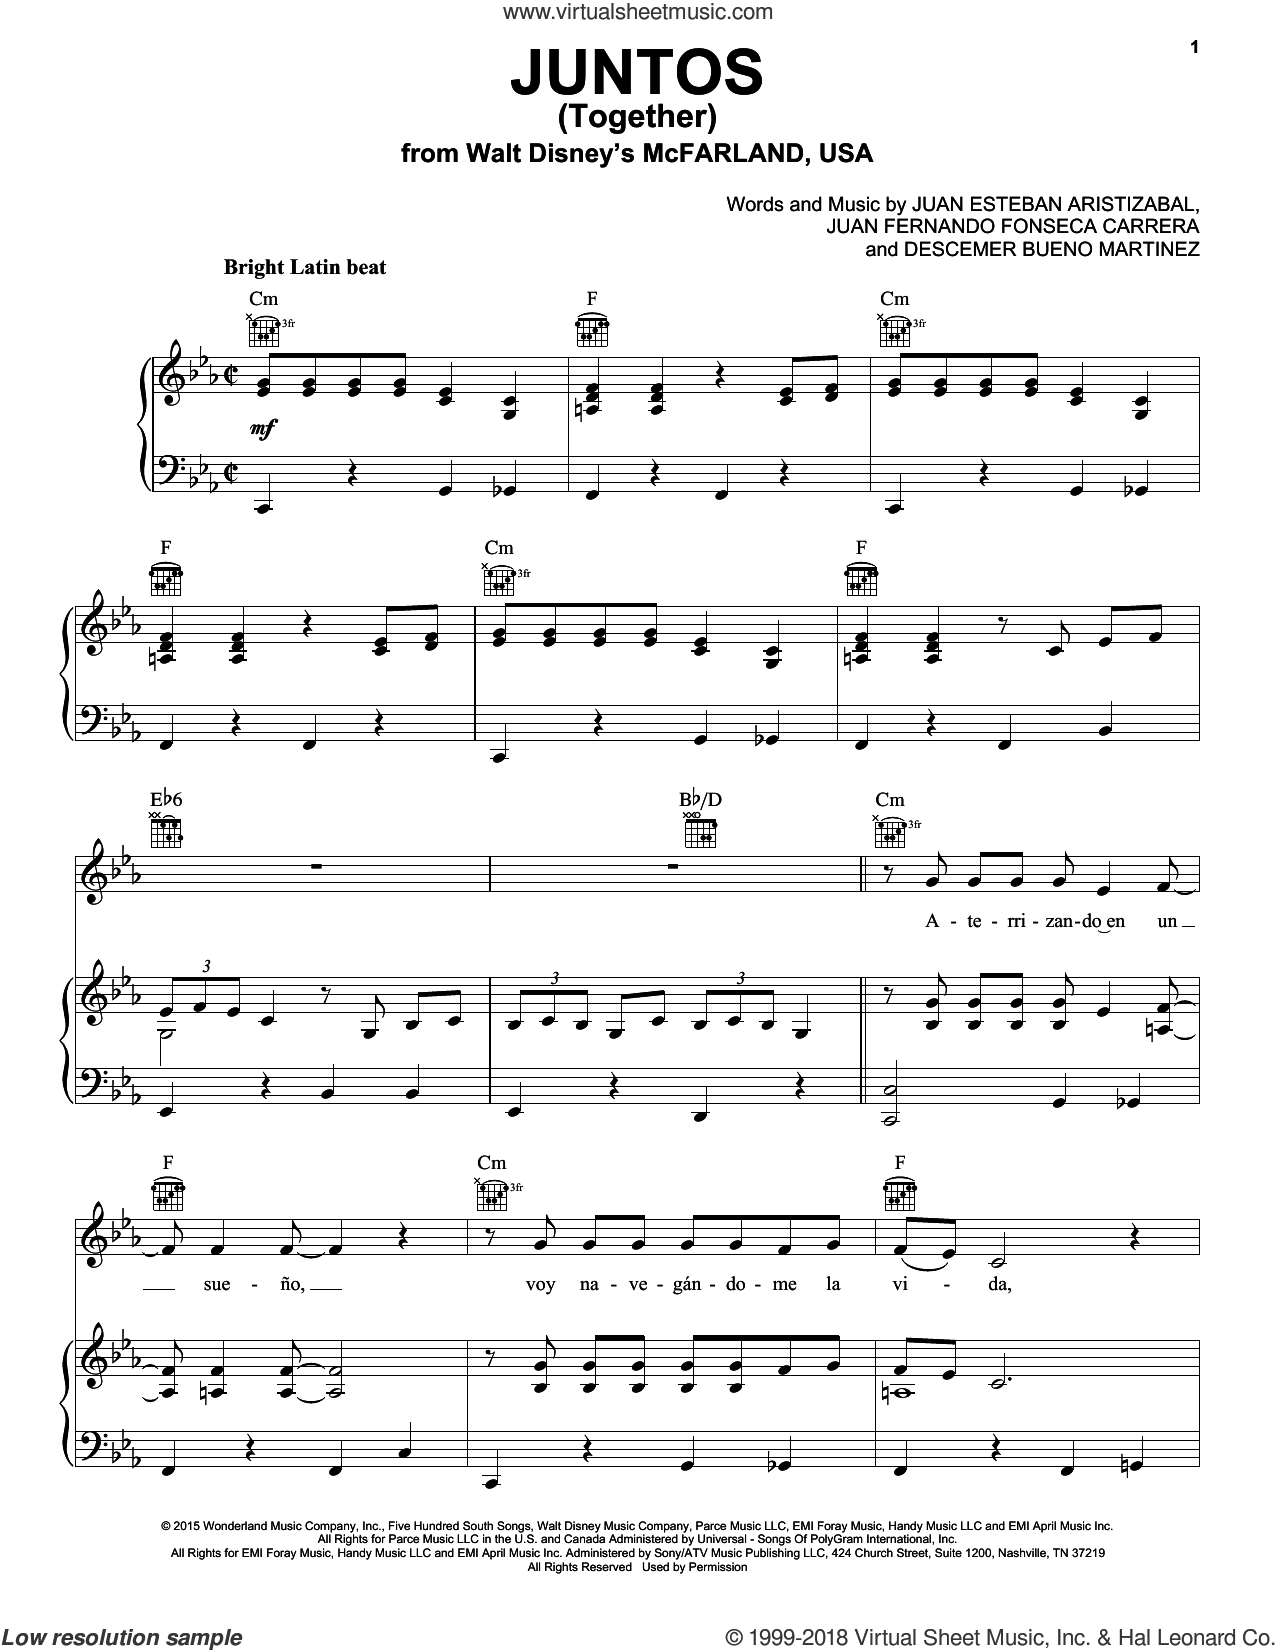 Juntos (Together) sheet music for voice, piano or guitar by Juanes, Descemer Bueno Martinez, Juan Esteban Aristizabal and Juan Fernando Fonseca Carrera, intermediate skill level